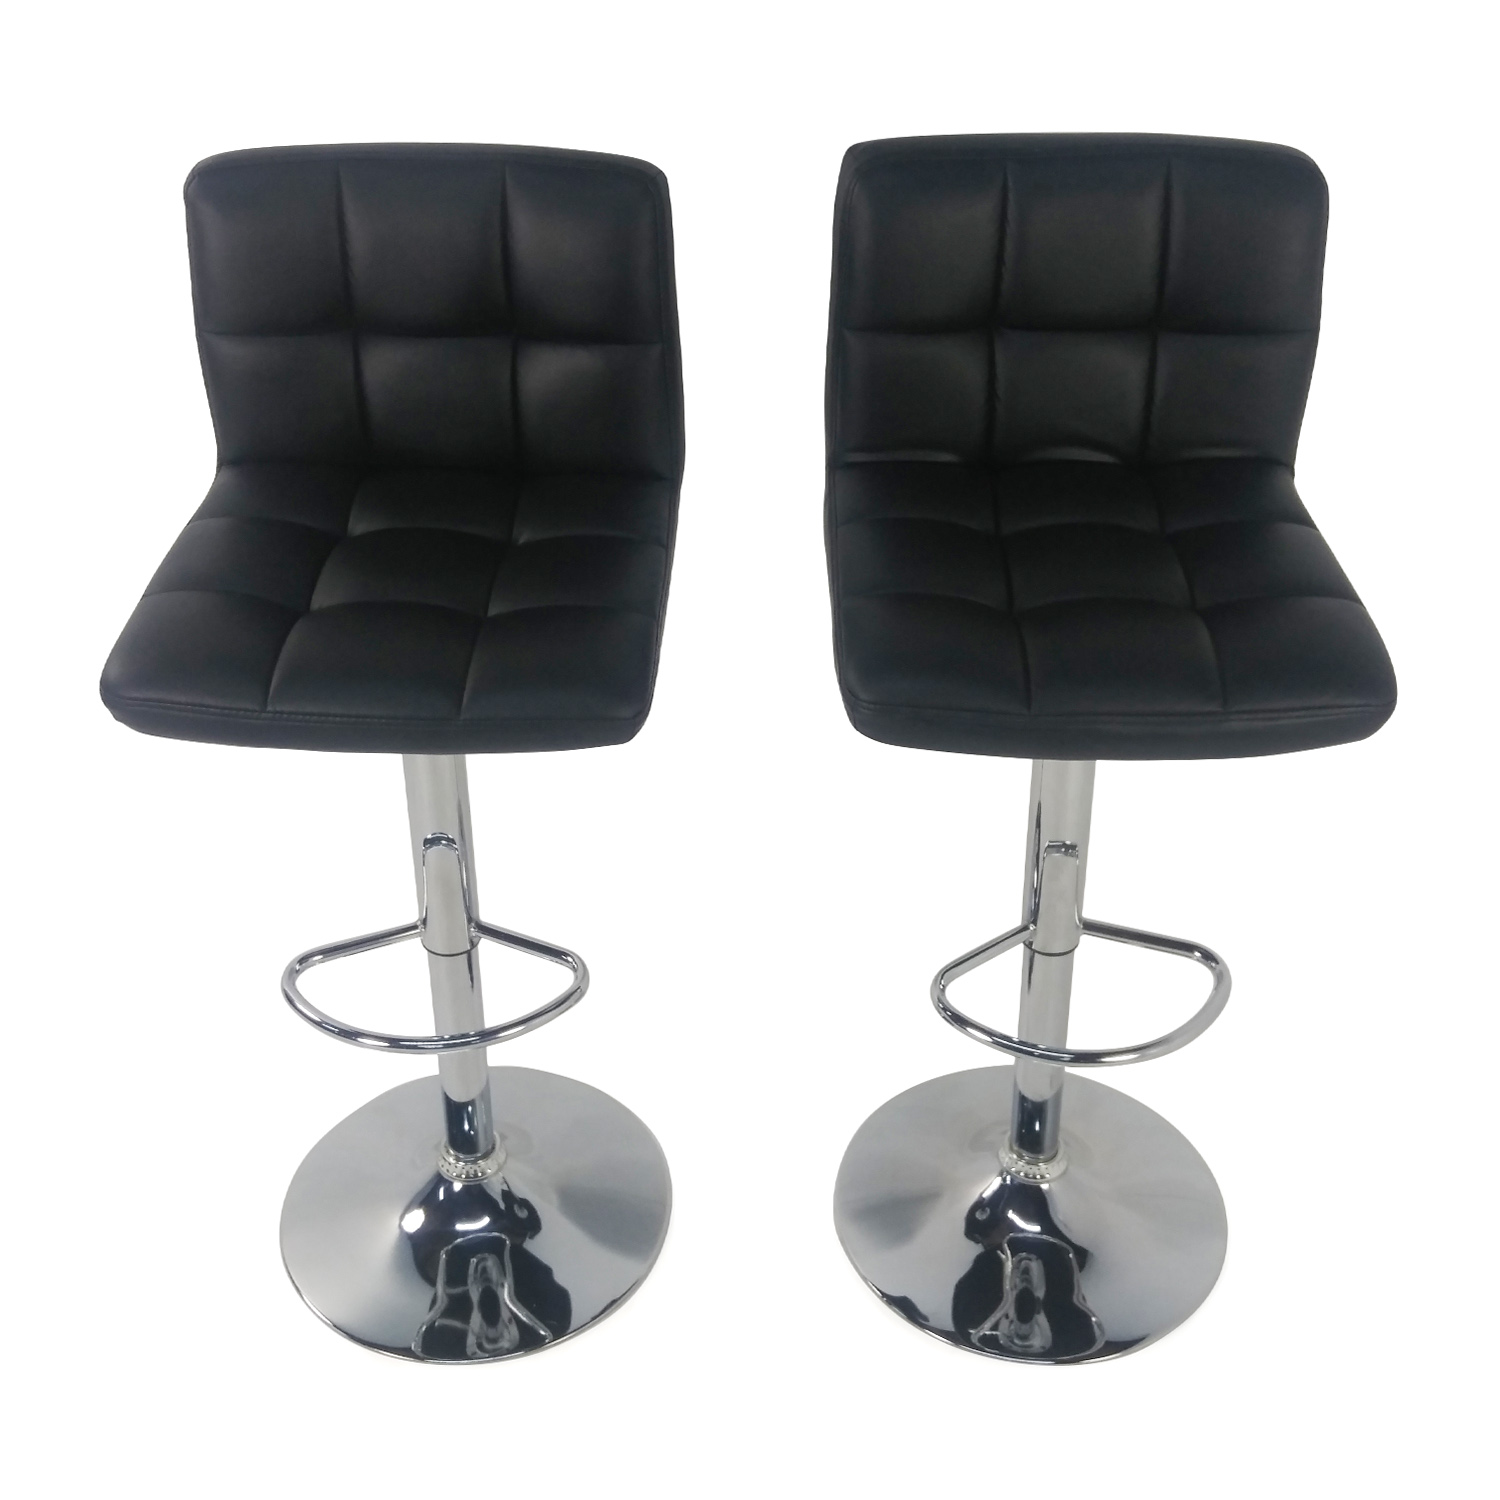 Roundhill Roundhill Black Adjustable Swivel Chairs price